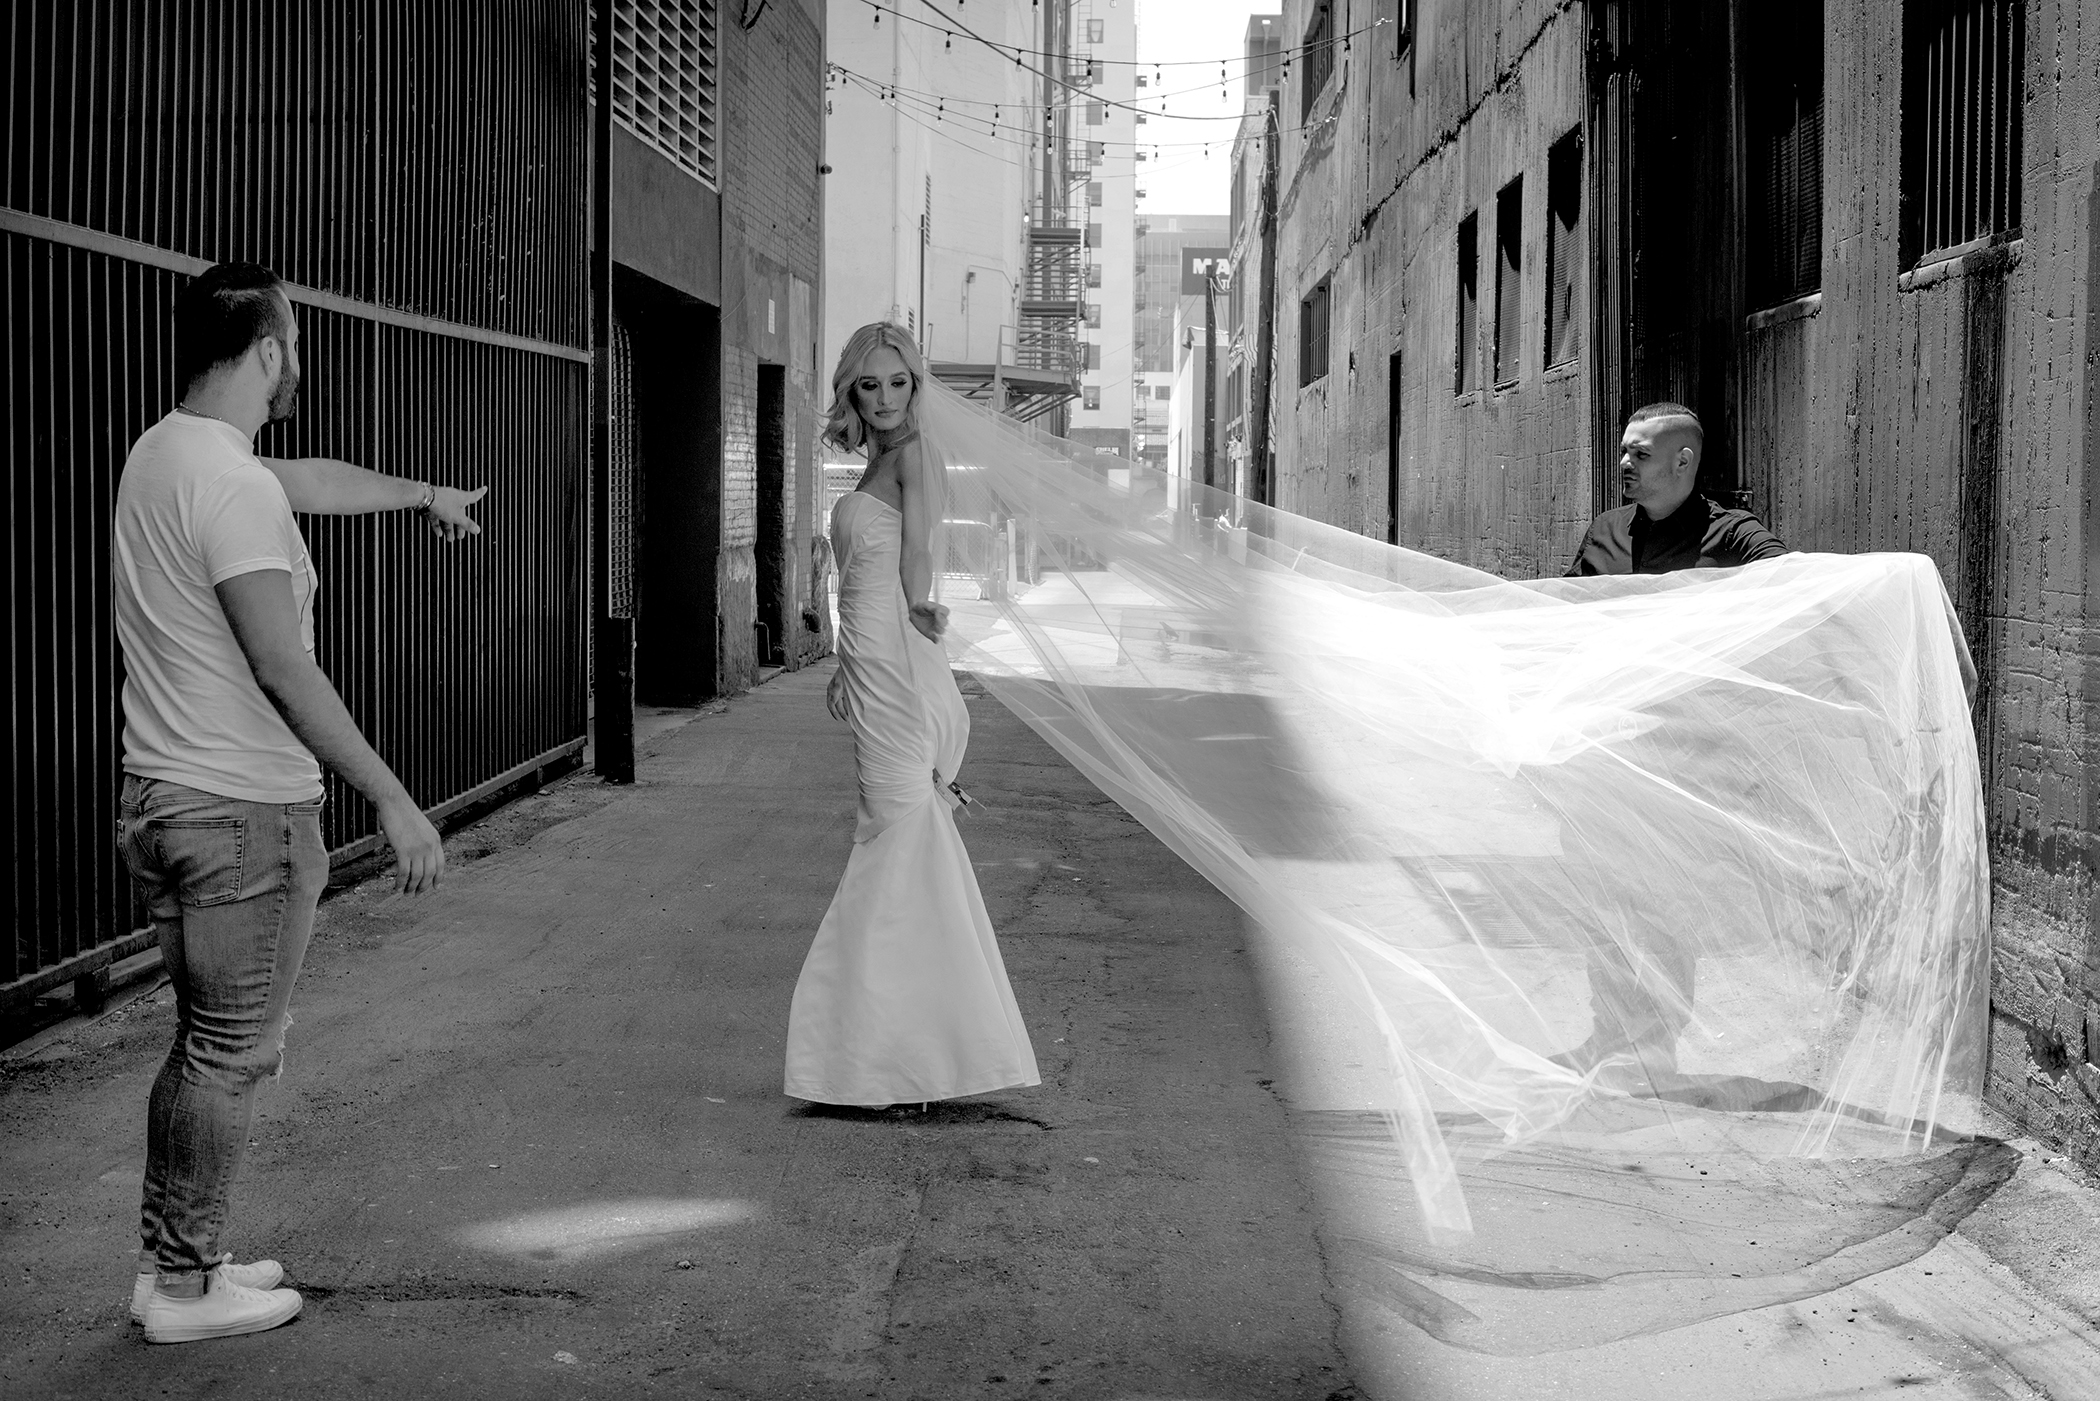 Alleyway Bride, Los Angeles, CA,2016.jpg